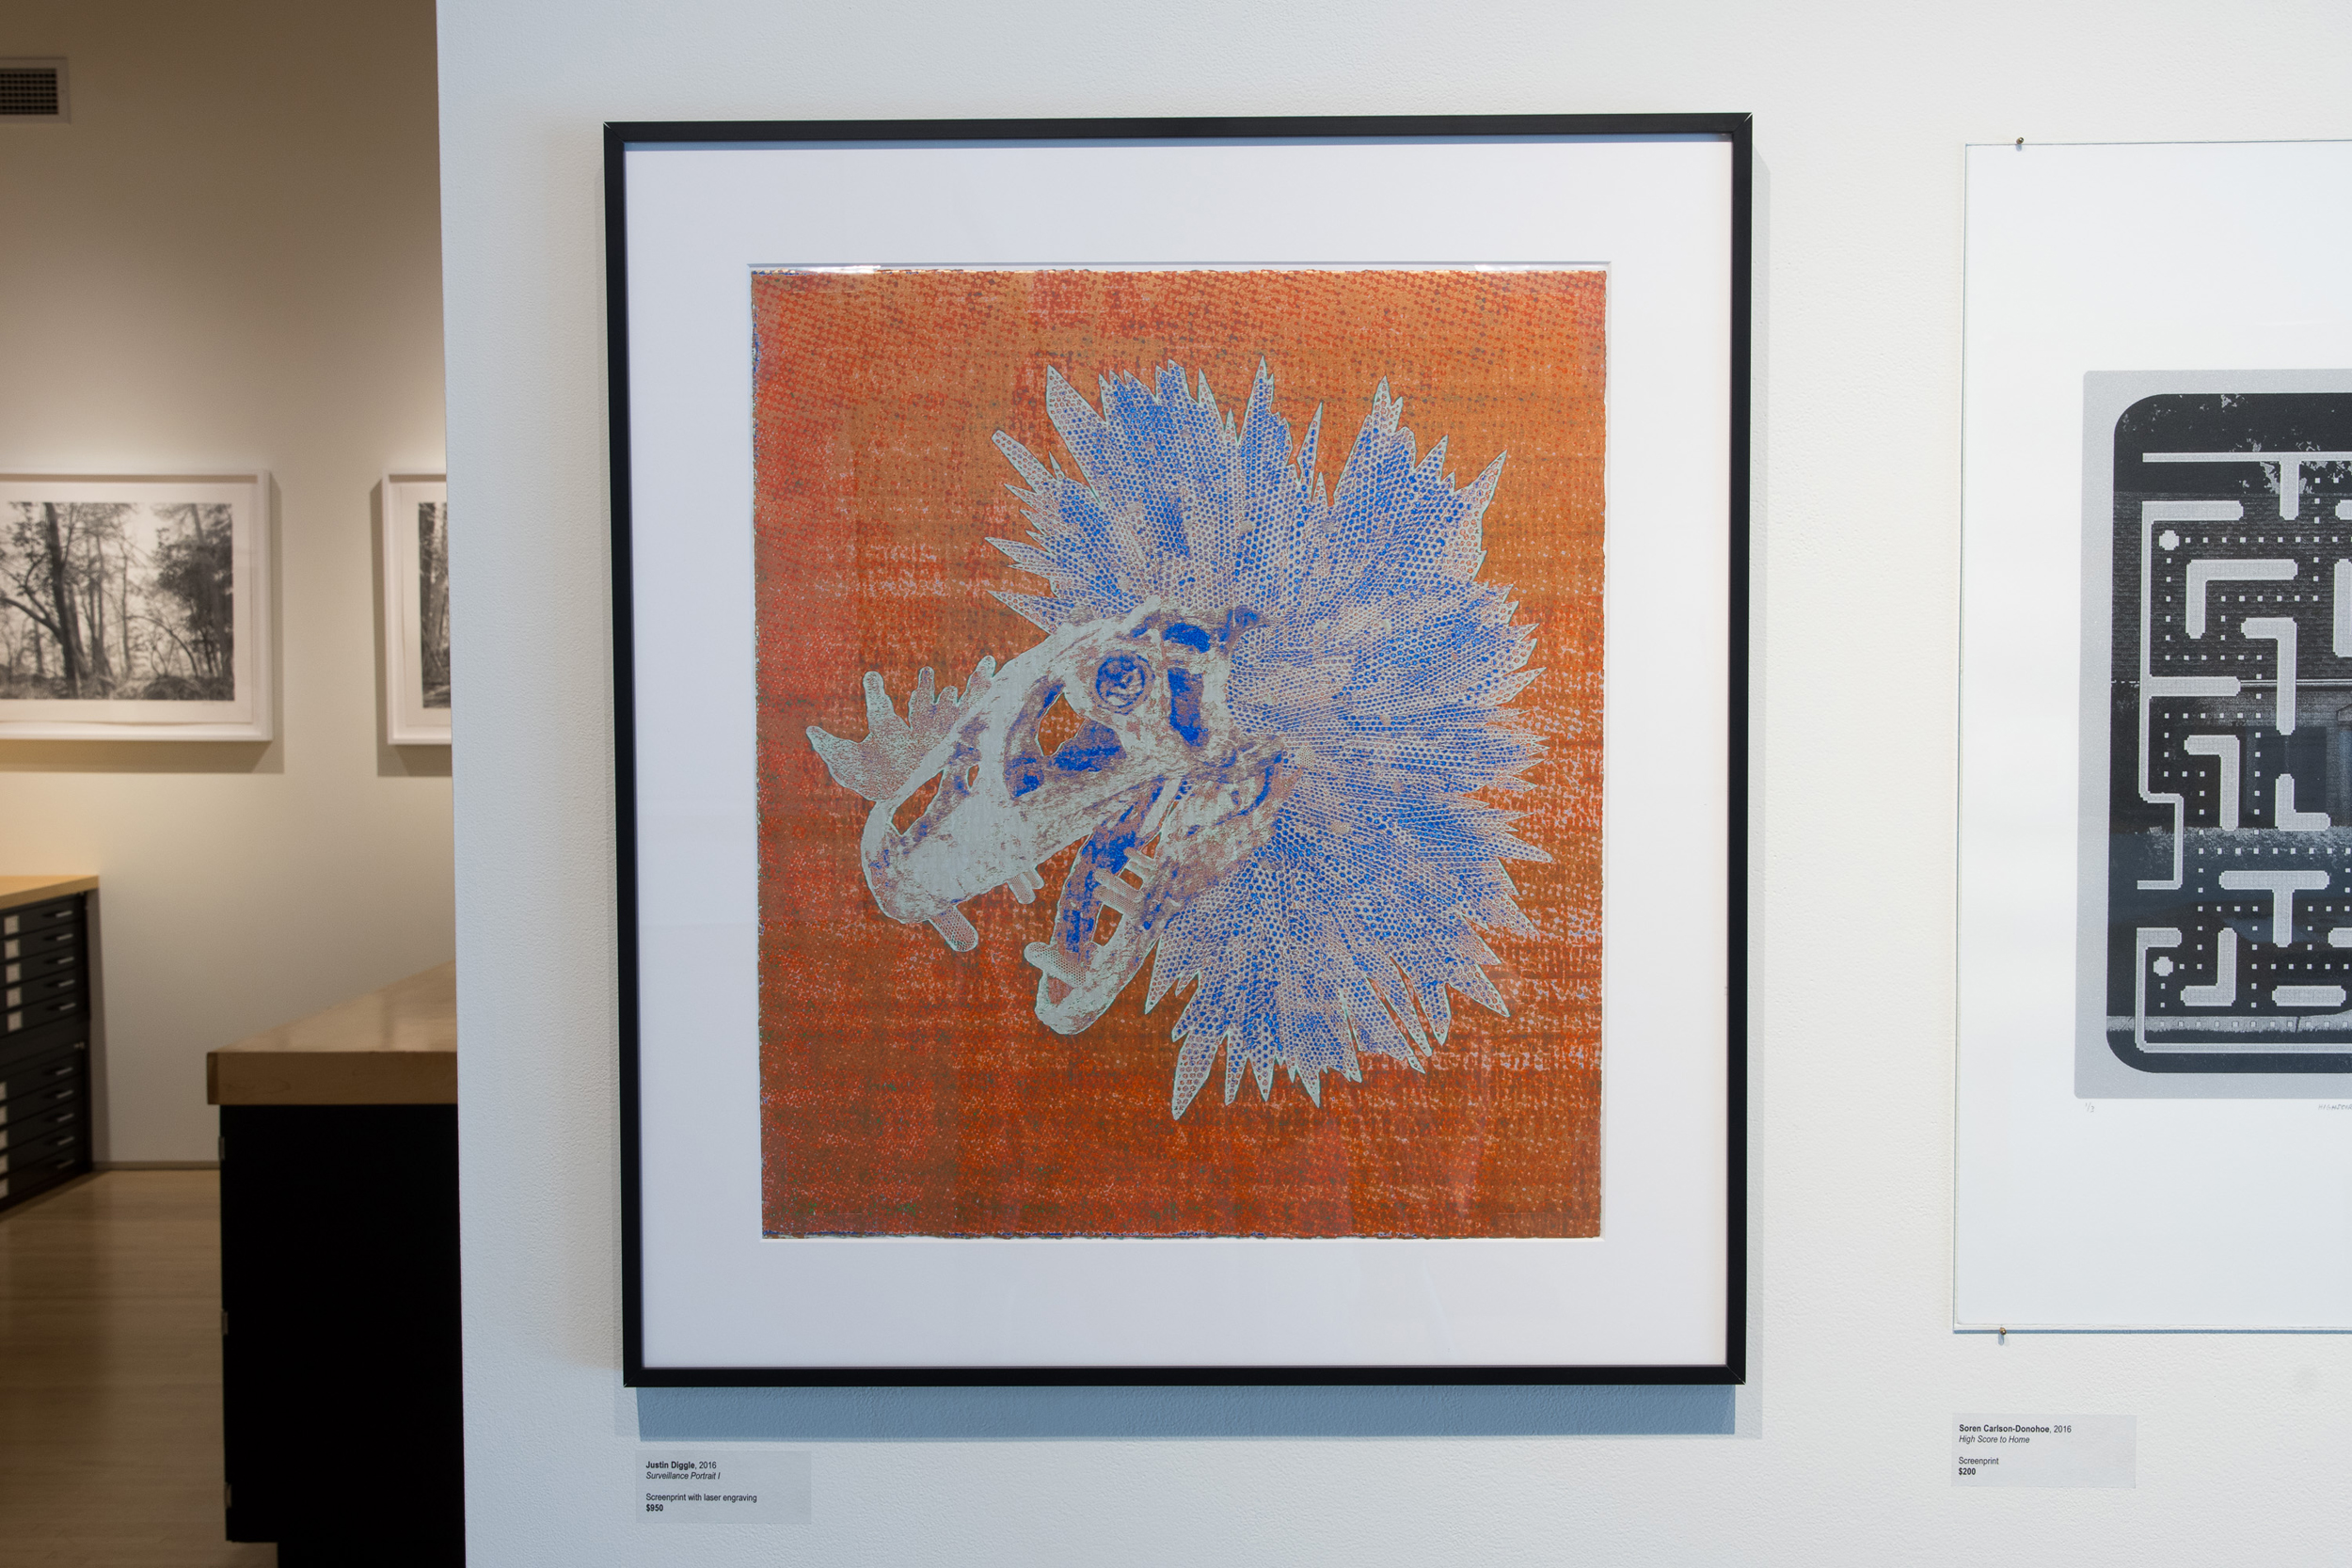 Highpoint PrintmakingStand Out Prints Exhibit180927a0175.JPG